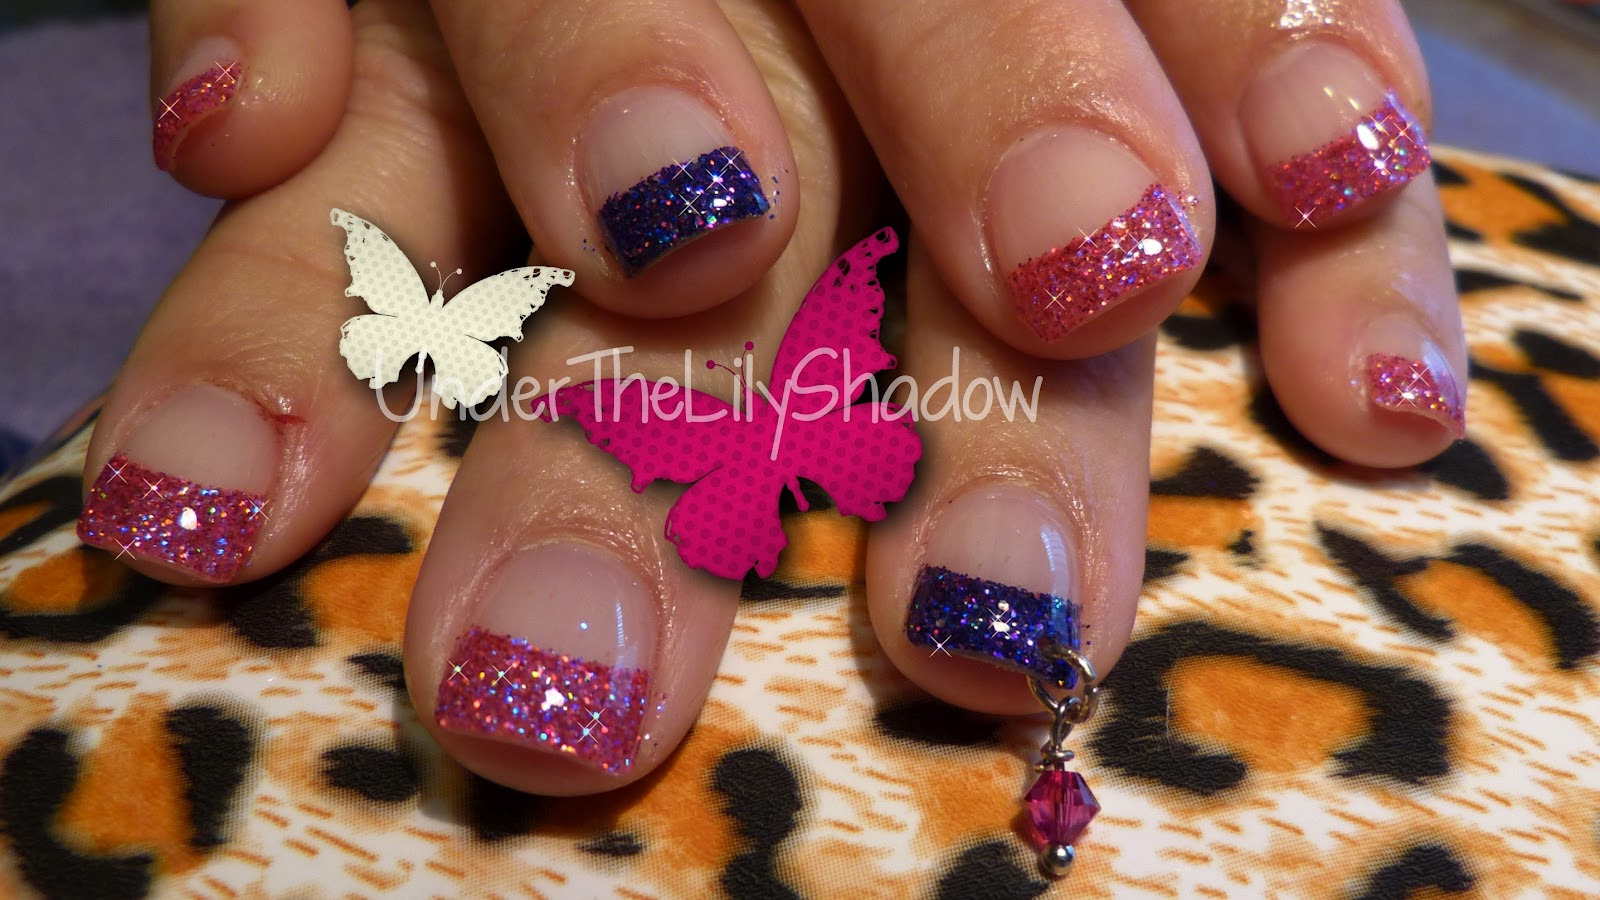 underthelilyshadow: Nicki Minaj Nail Art